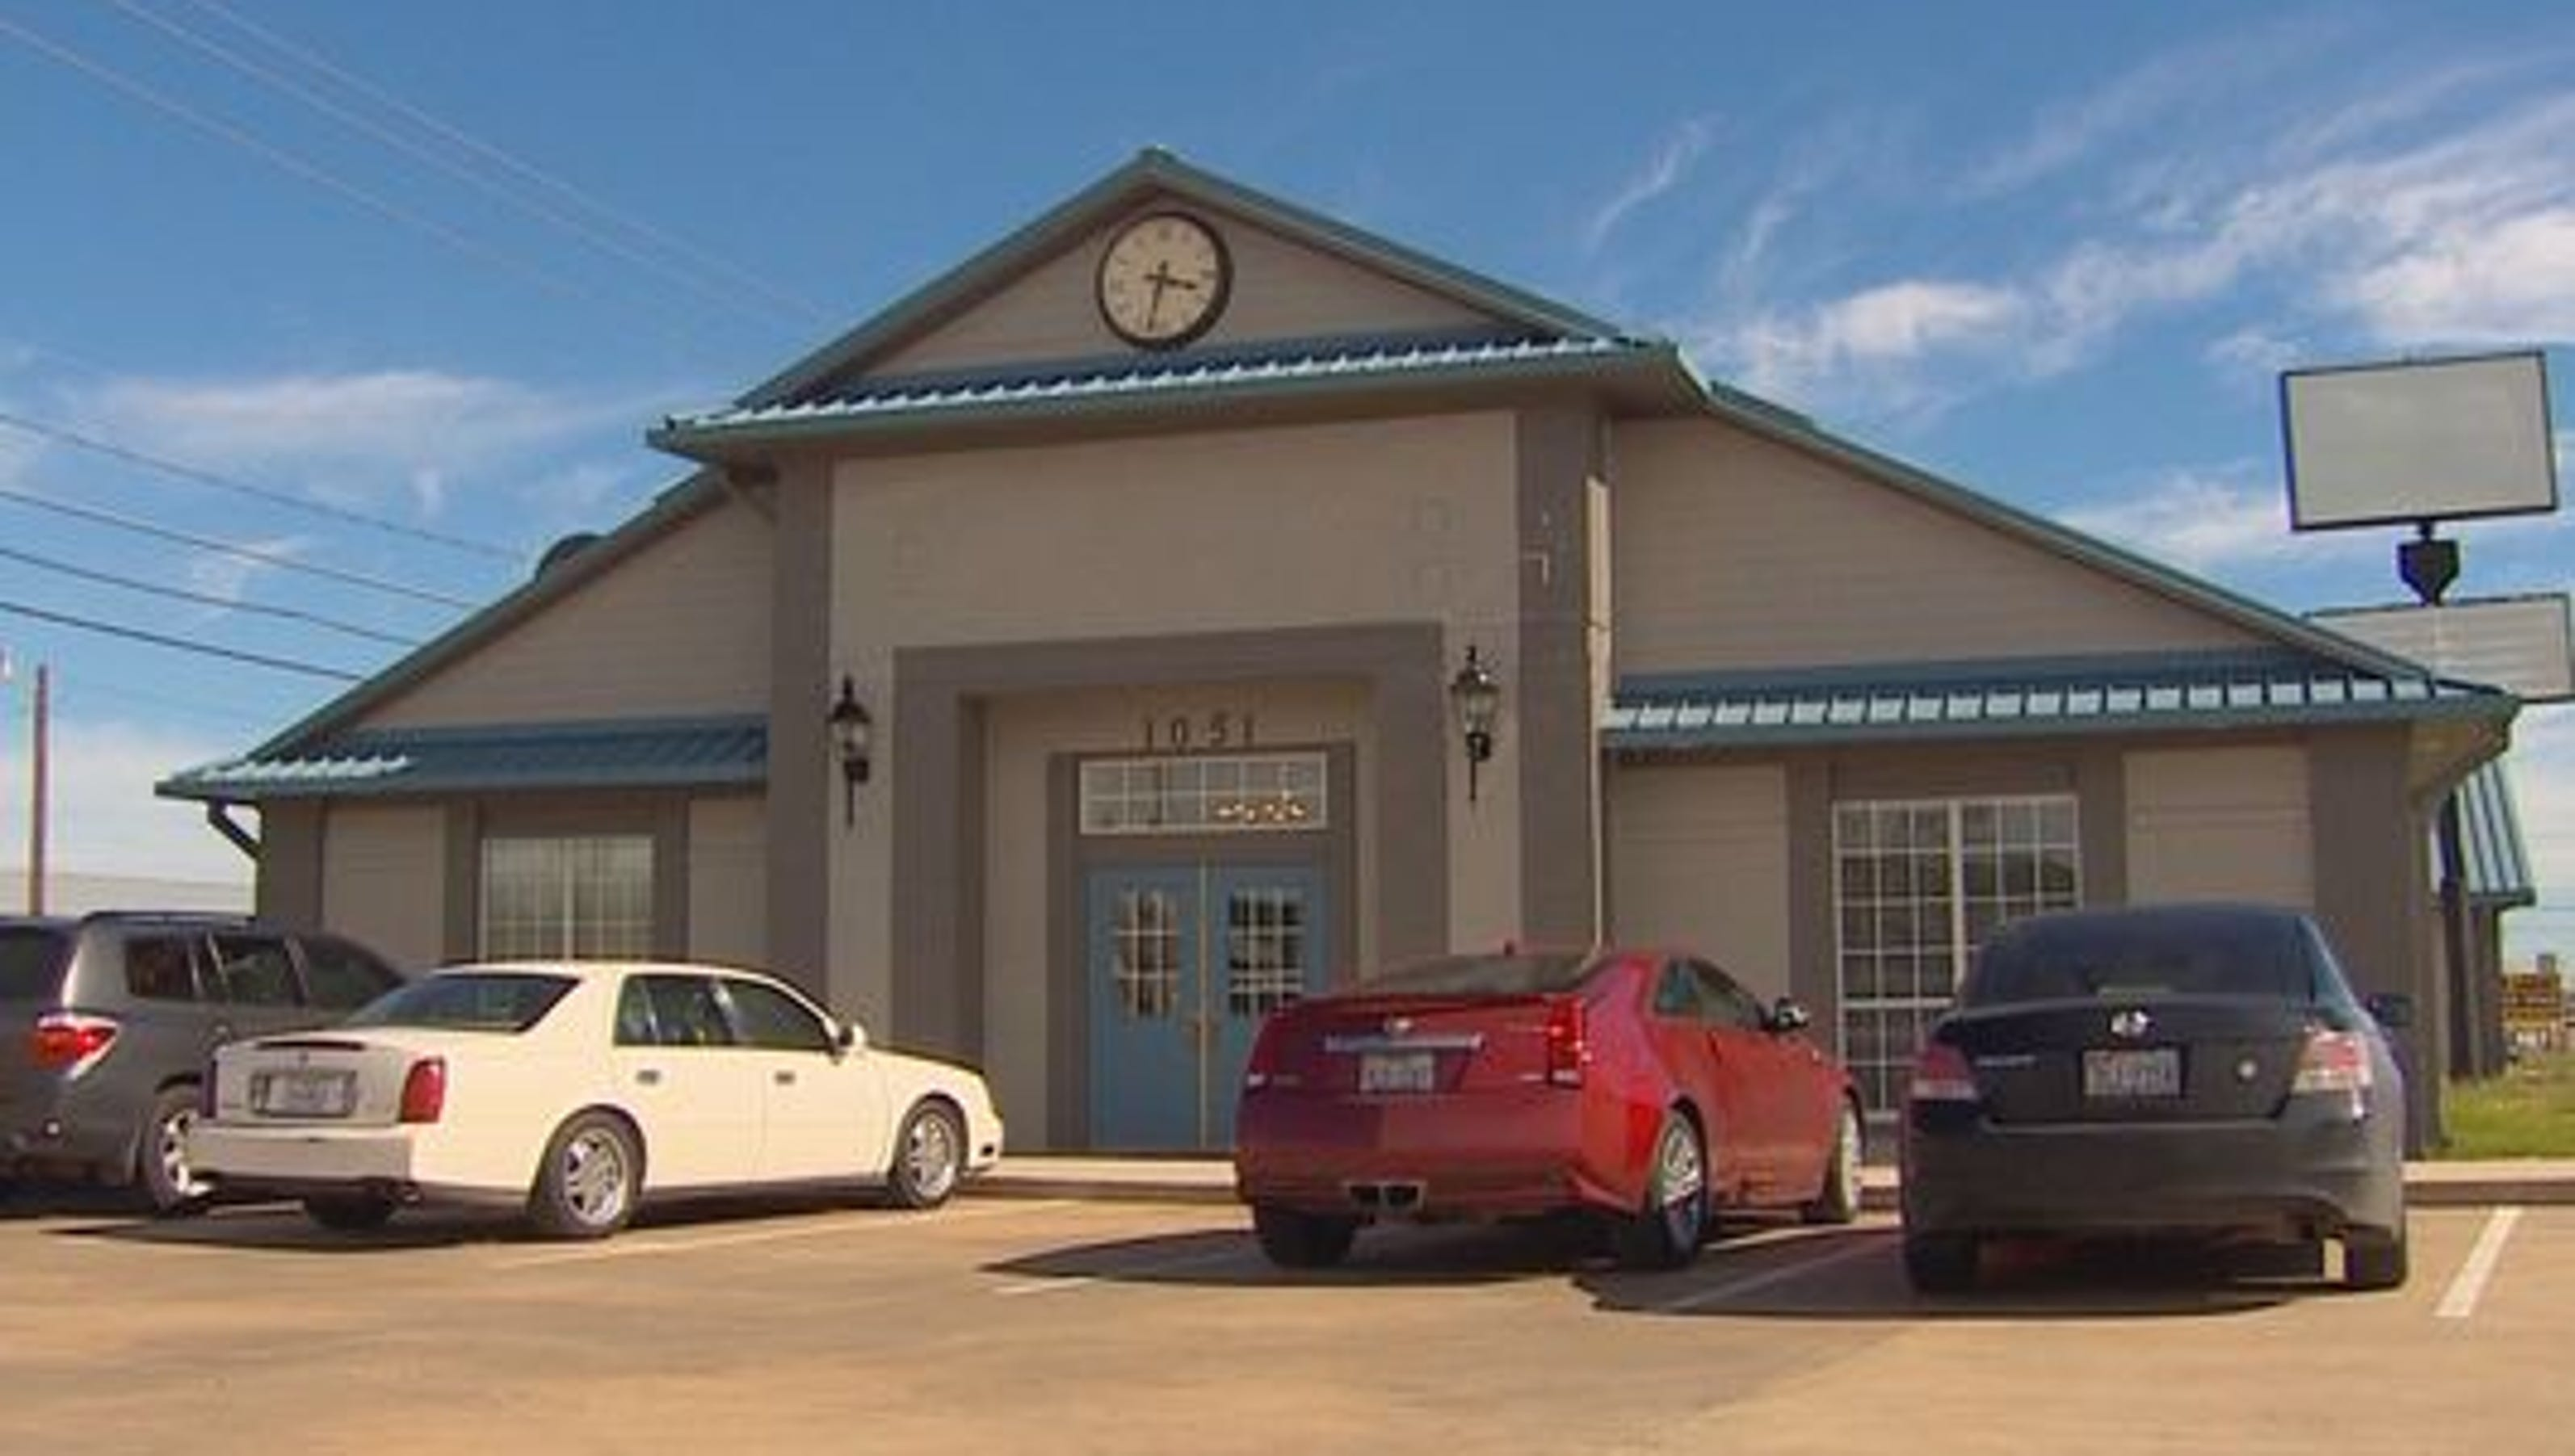 Fort Worth Funeral Home Hopes To Free Itself From Stigma